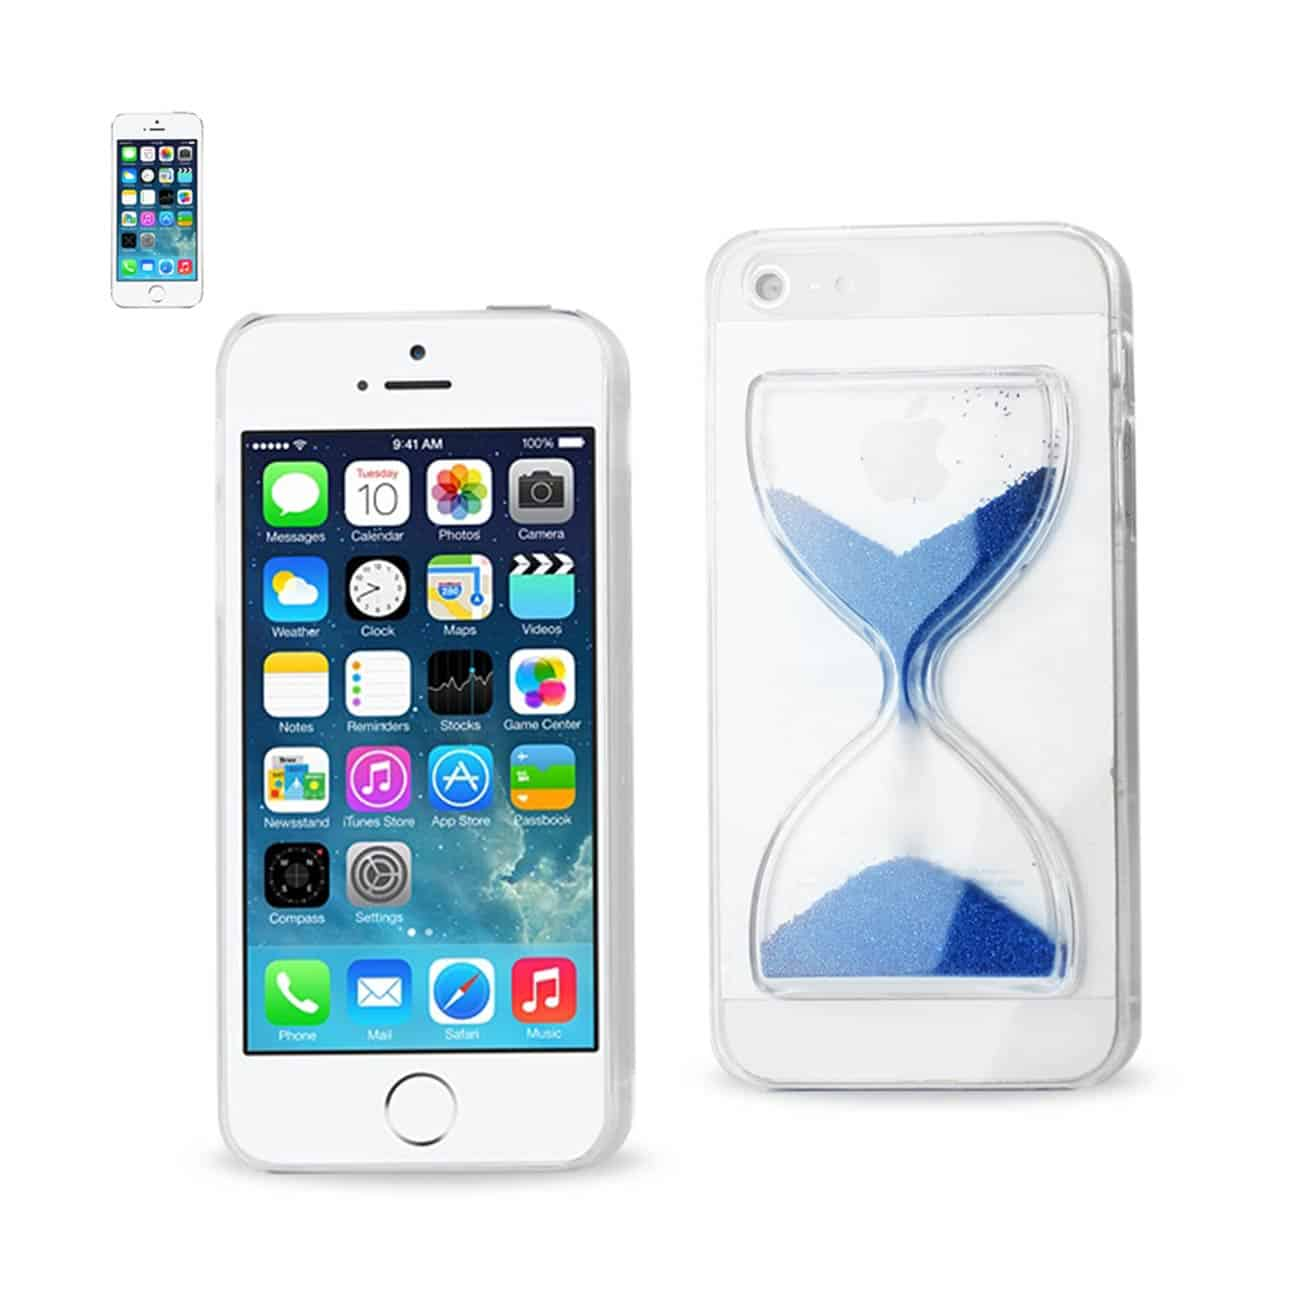 IPHONE SE/ 5S/ 5 3D SAND CLOCK CLEAR CASE IN NAVY